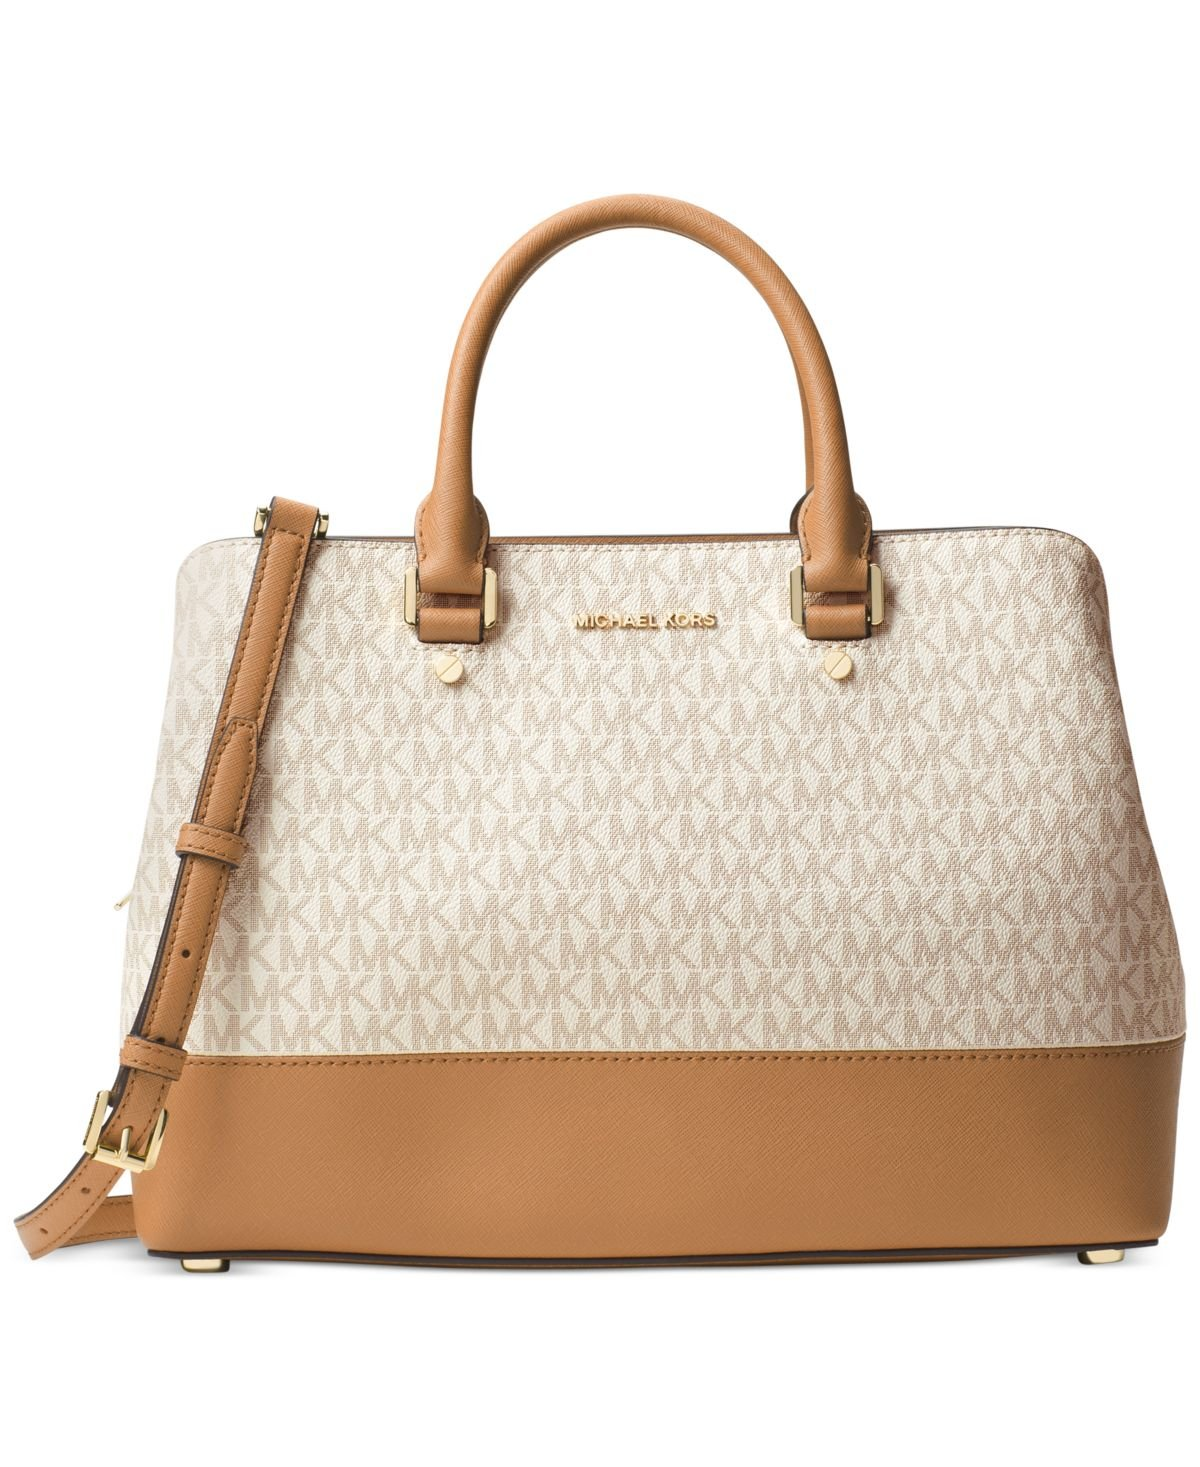 Michael Kors Savannah Large Satchel (Vanilla)